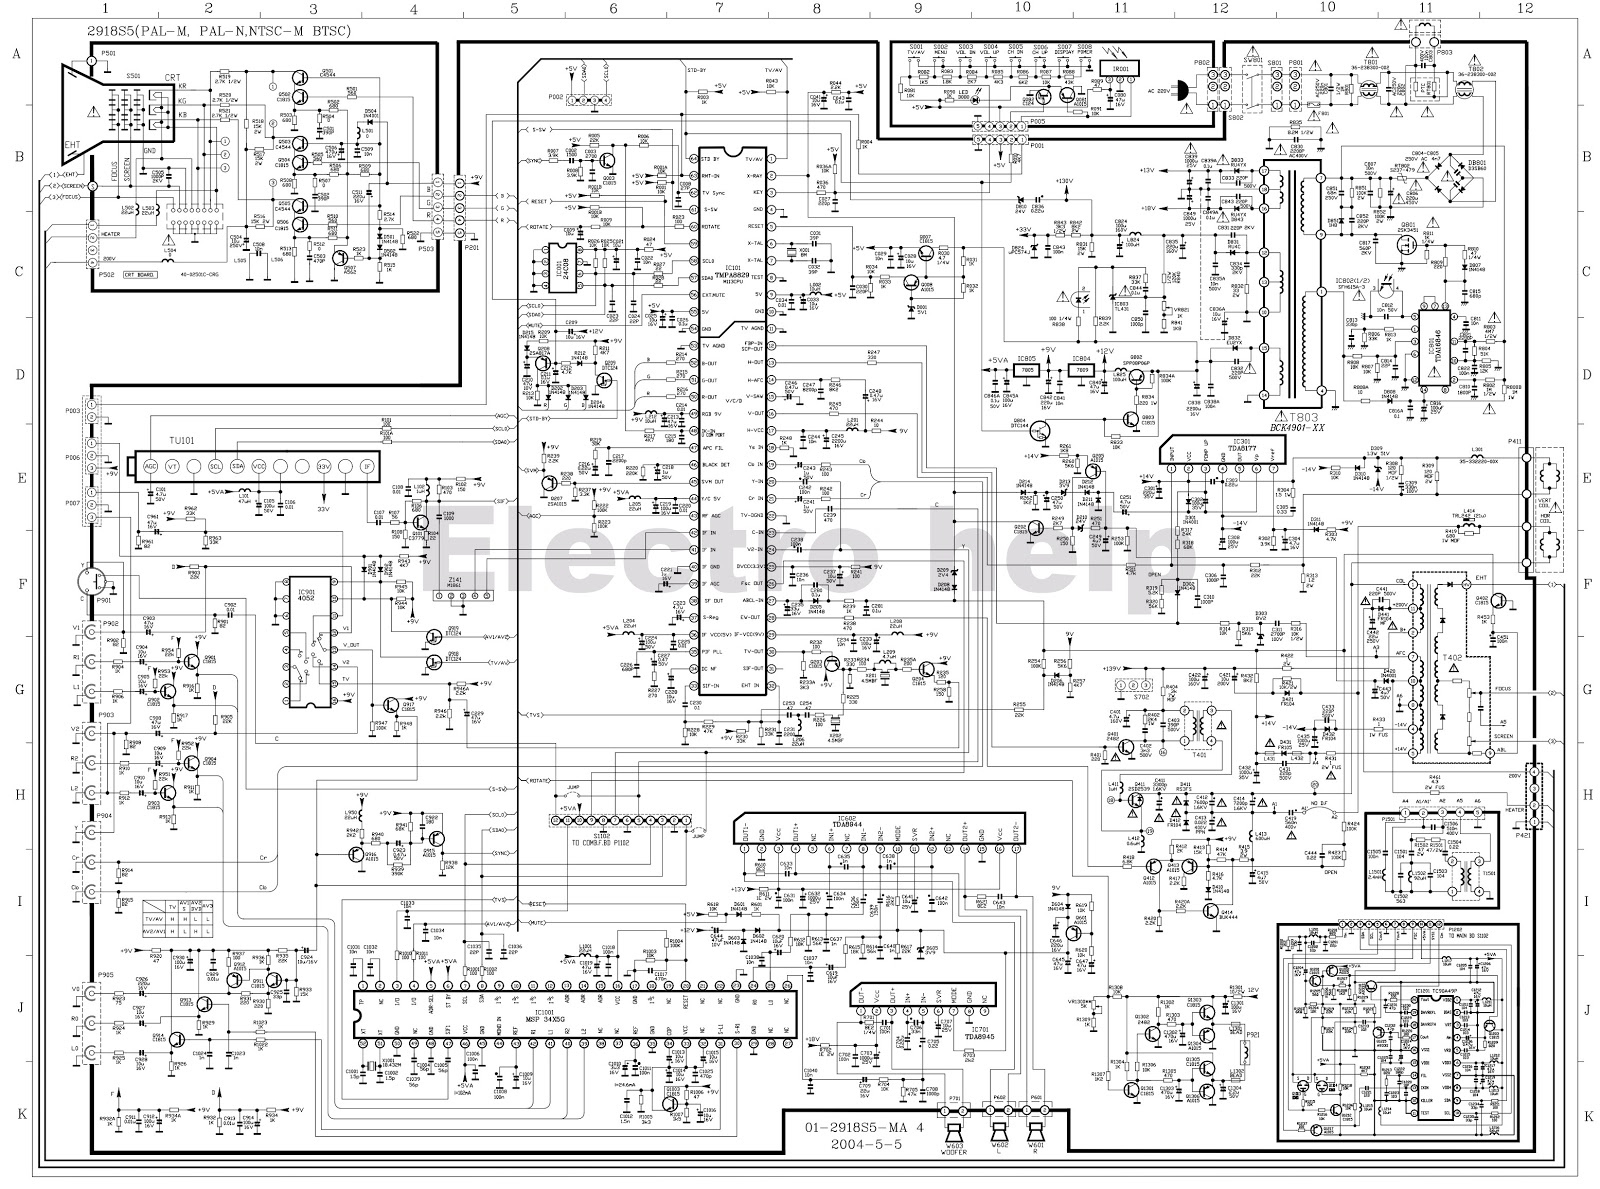 Ic Circuit Diagram Wiring Schematic Diagram